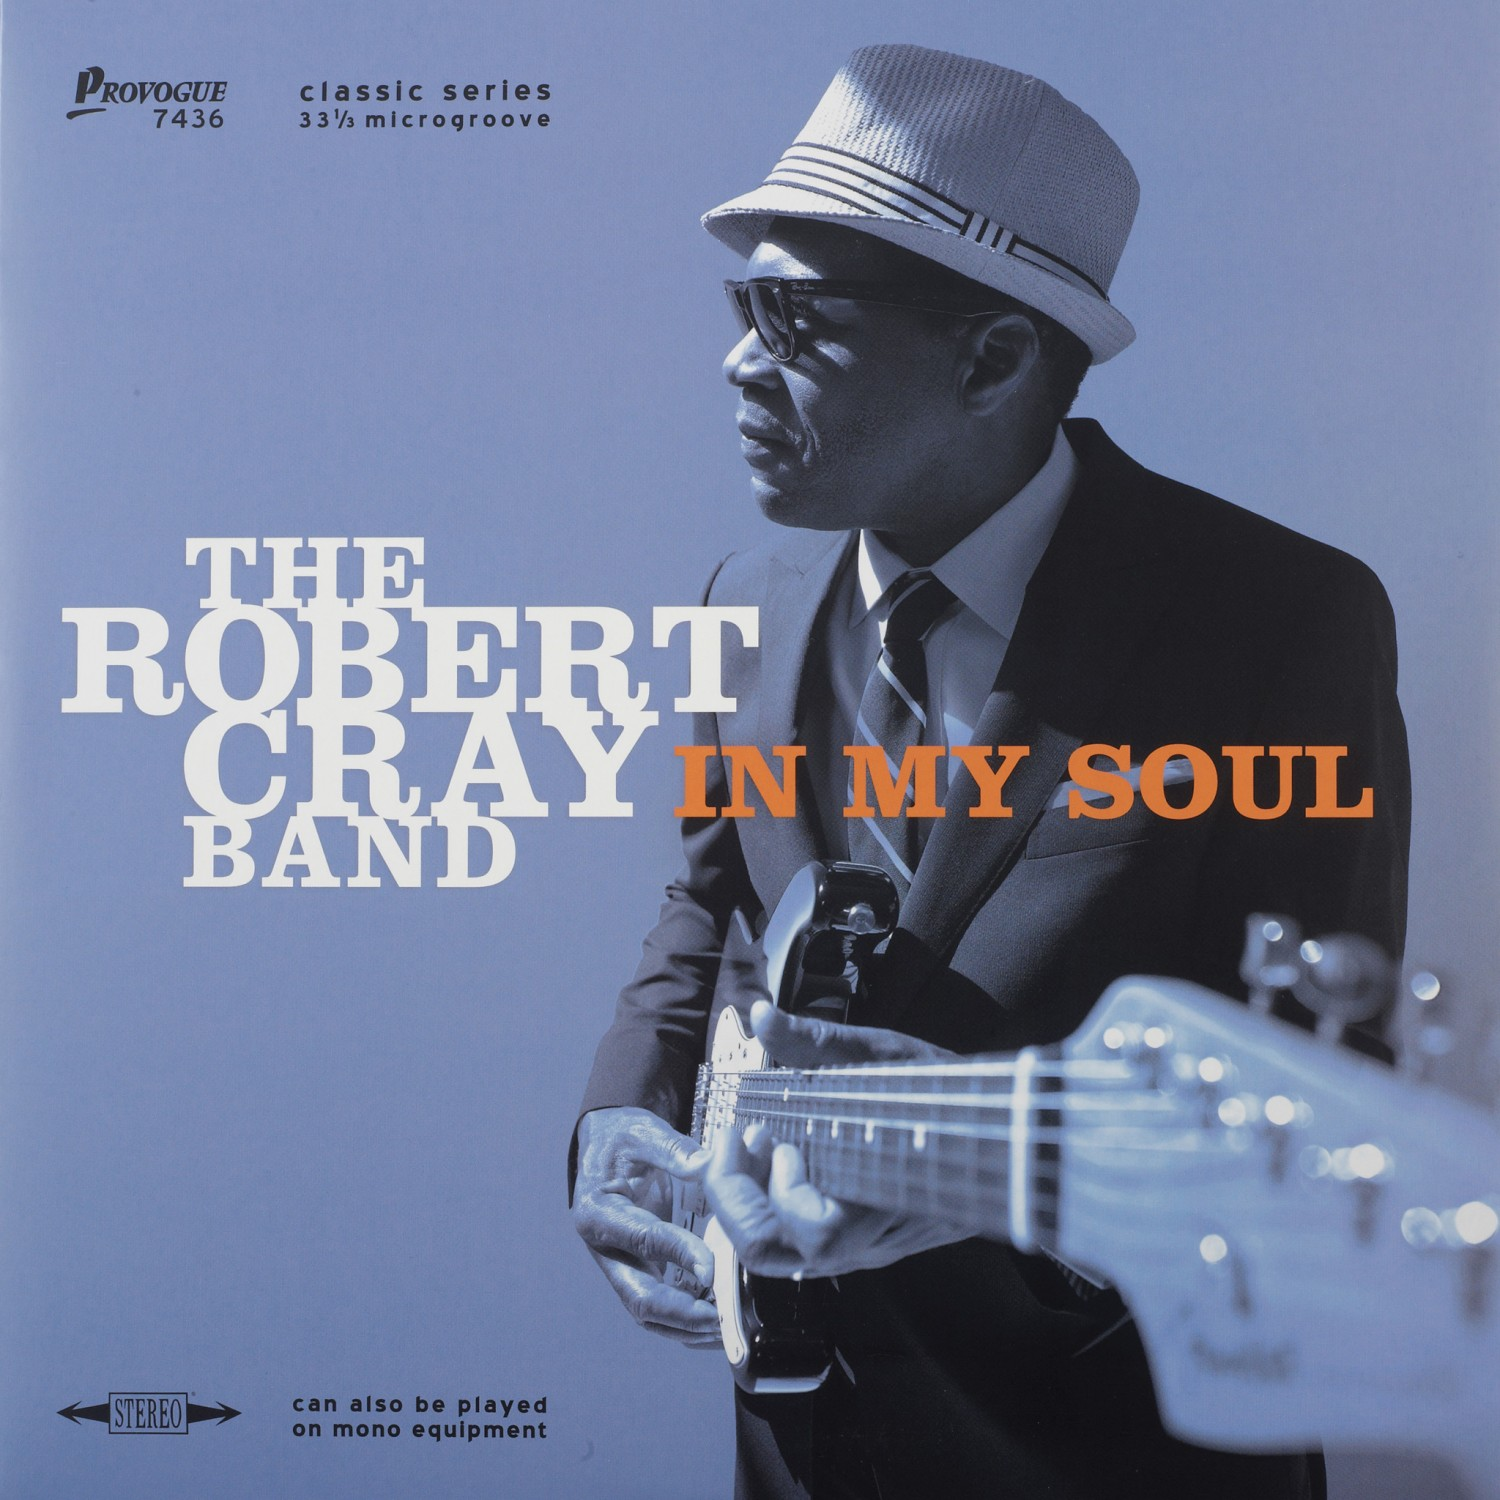 Schallplatte The Robert Cray Band - In My Soul (Provogue Records) im Test, Bild 1